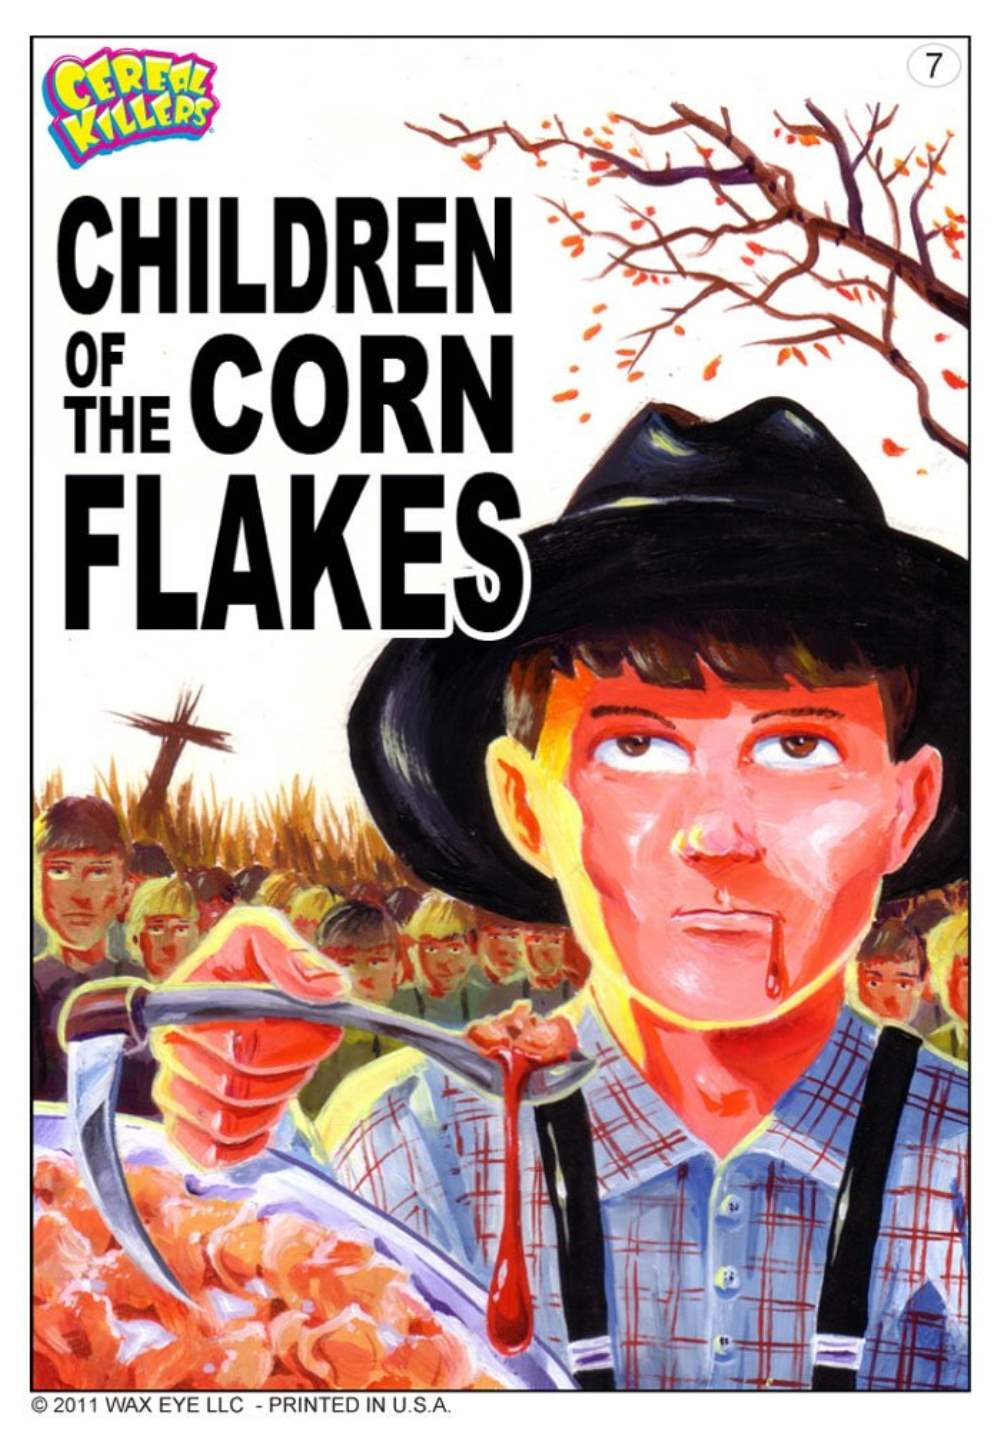 Cereal Killers Children Of The Corn Flakes